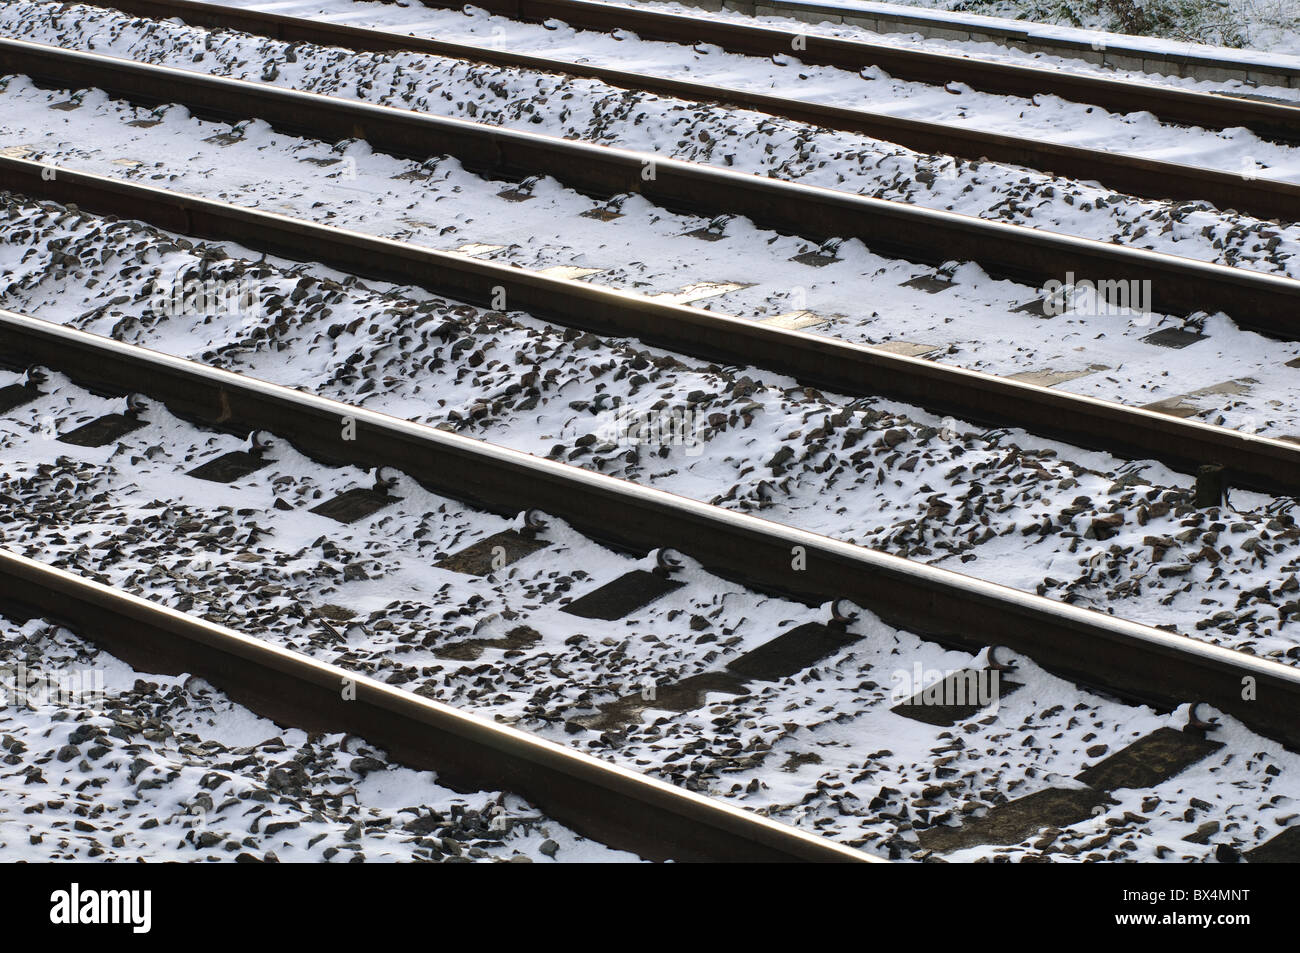 Railway lines in snowy conditions, UK - Stock Image